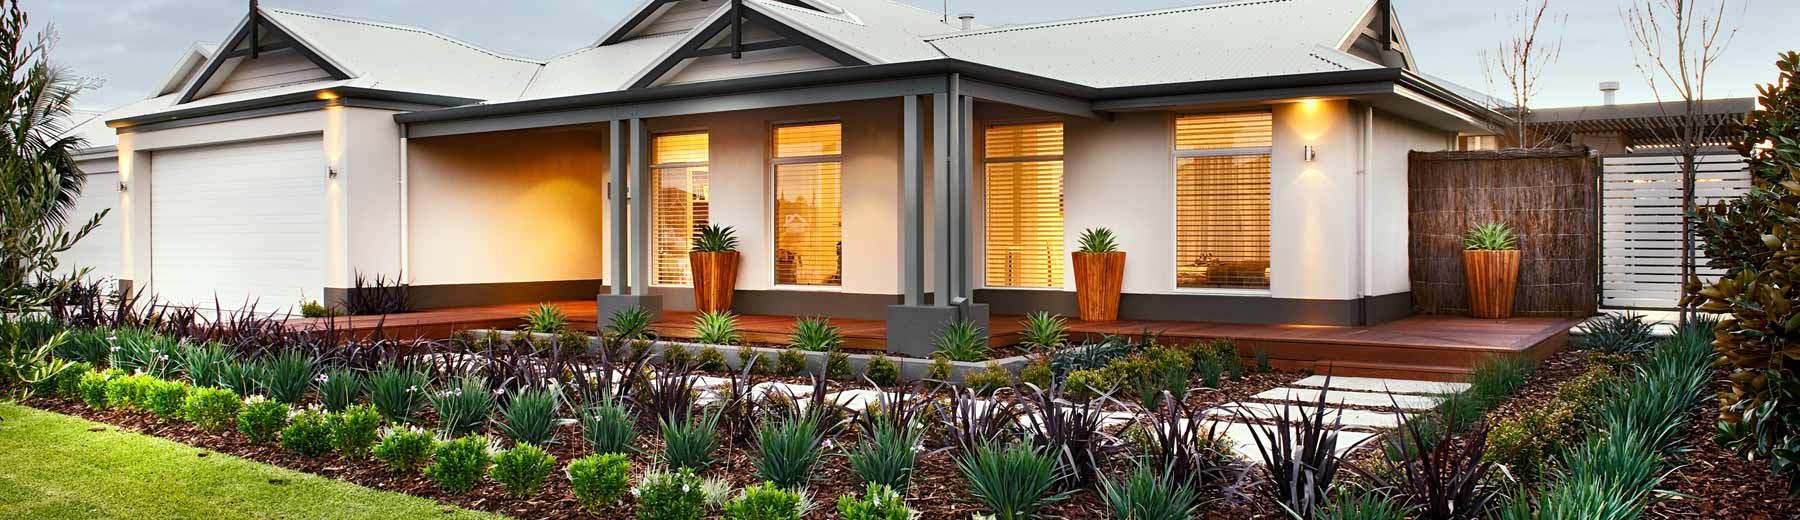 landscaping jobs perth landscape gardening employment